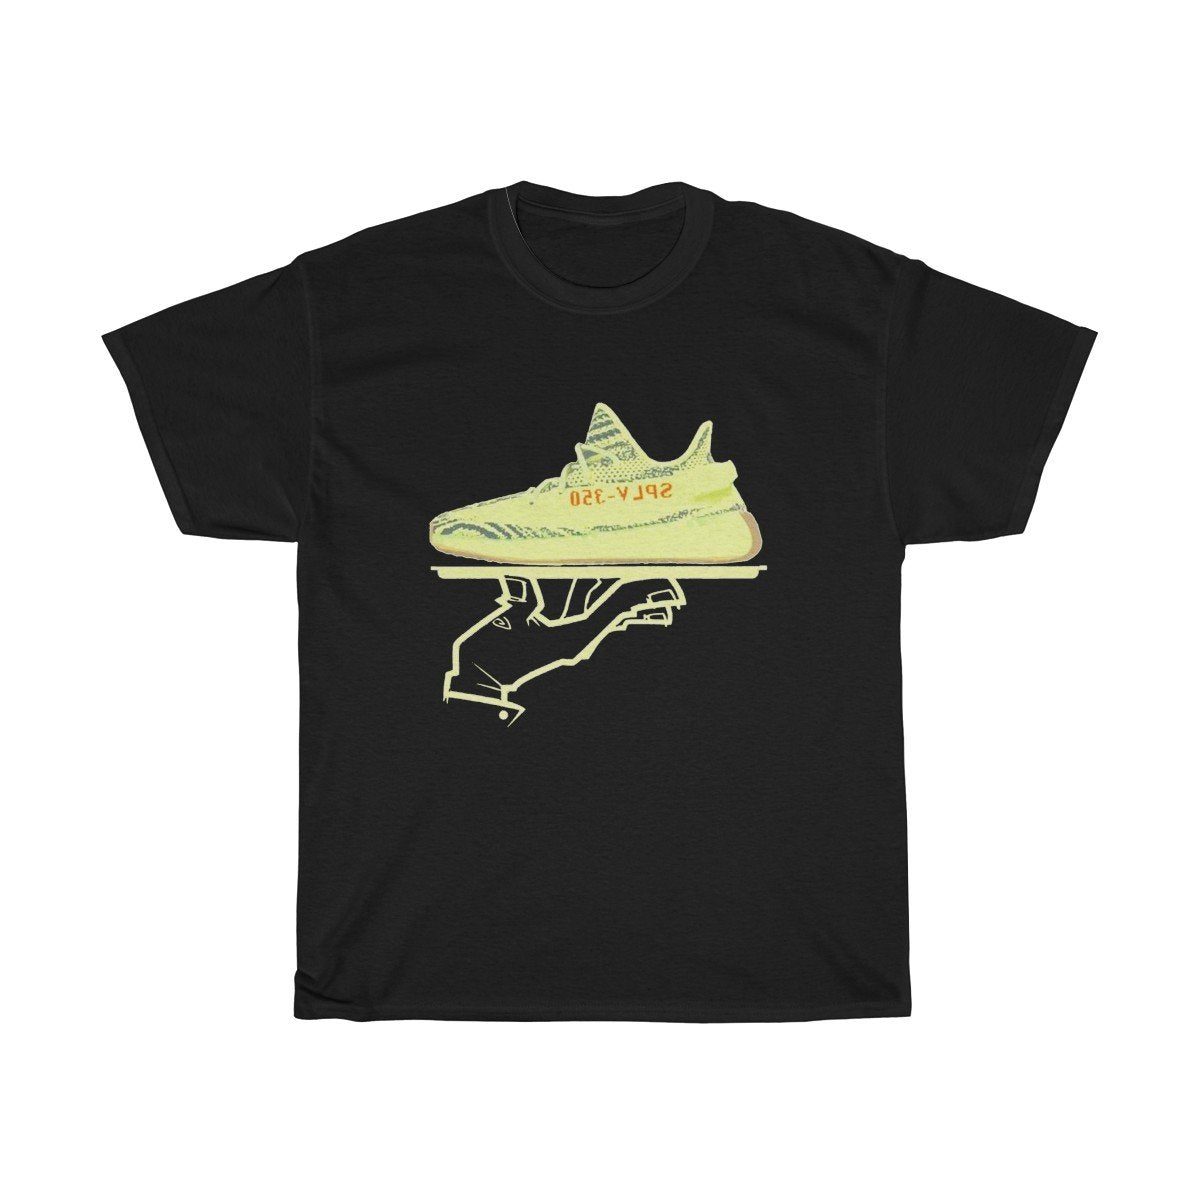 Yeezy Boost 350 V2 Semi Frozen Yellow Sneakermatch Black Mens T Shirt